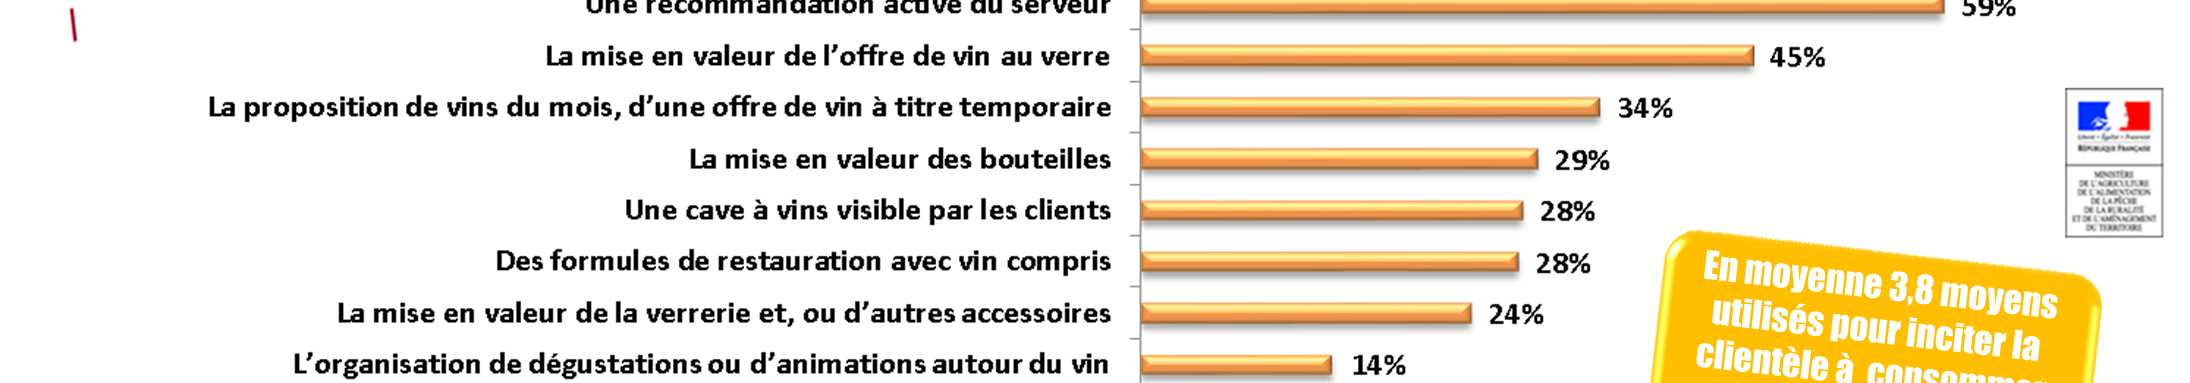 Incitation à la consommation de vin A la question issue du panel complémentaire de 2013 en RAT : «Quels sont parmi les moyens ci-dessous, ceux que vous utilisez aujourd hui pour inciter votre